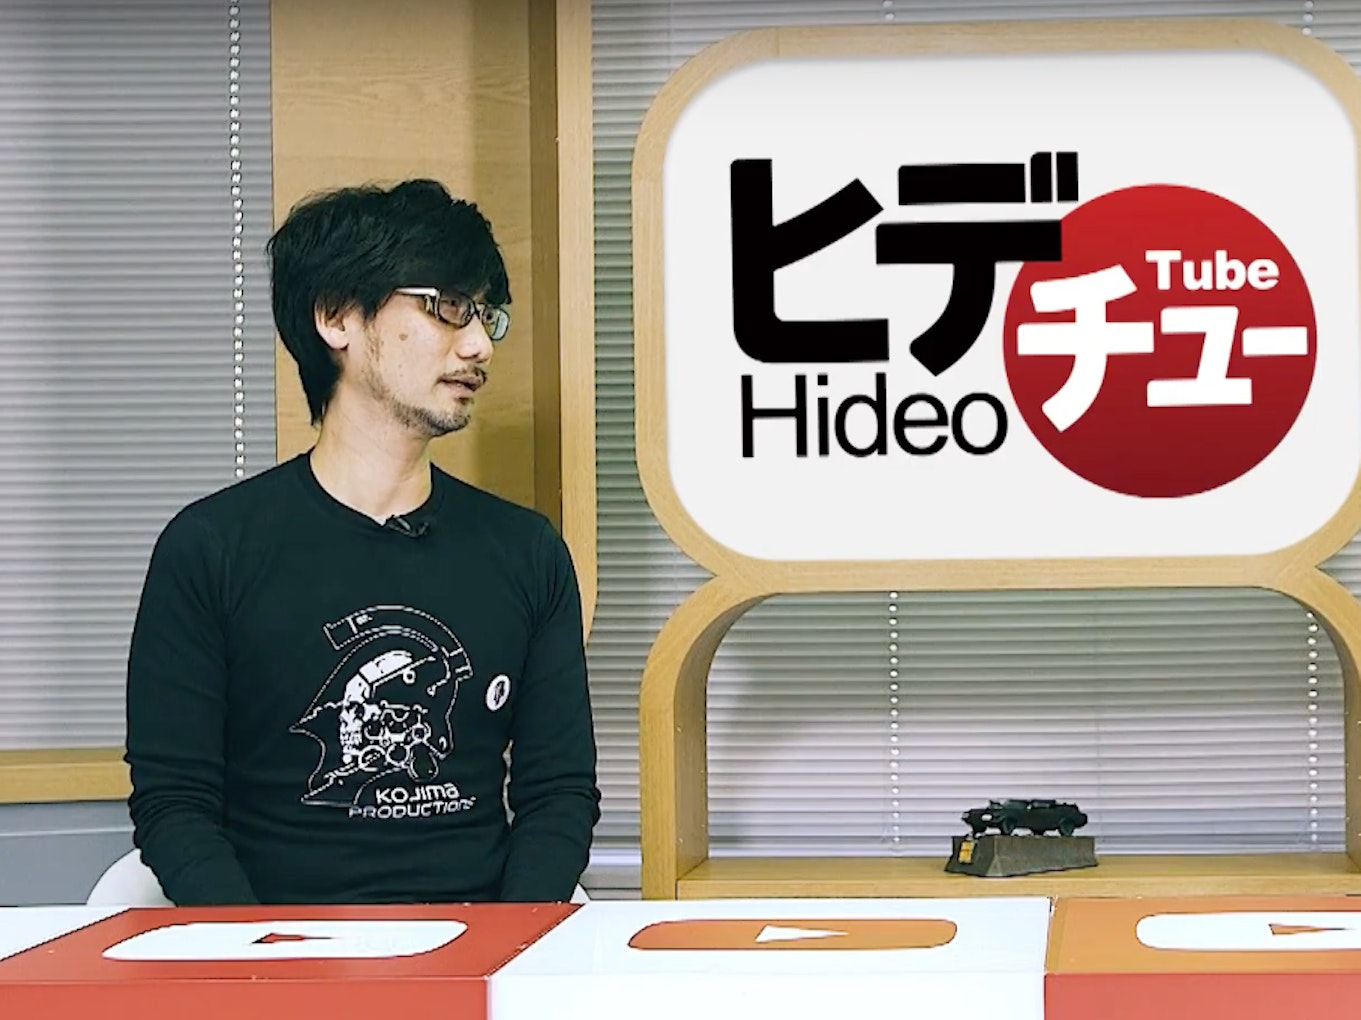 Hideo Kojima Starts YouTube Channel HideoTube, and It's Off to a Great Start